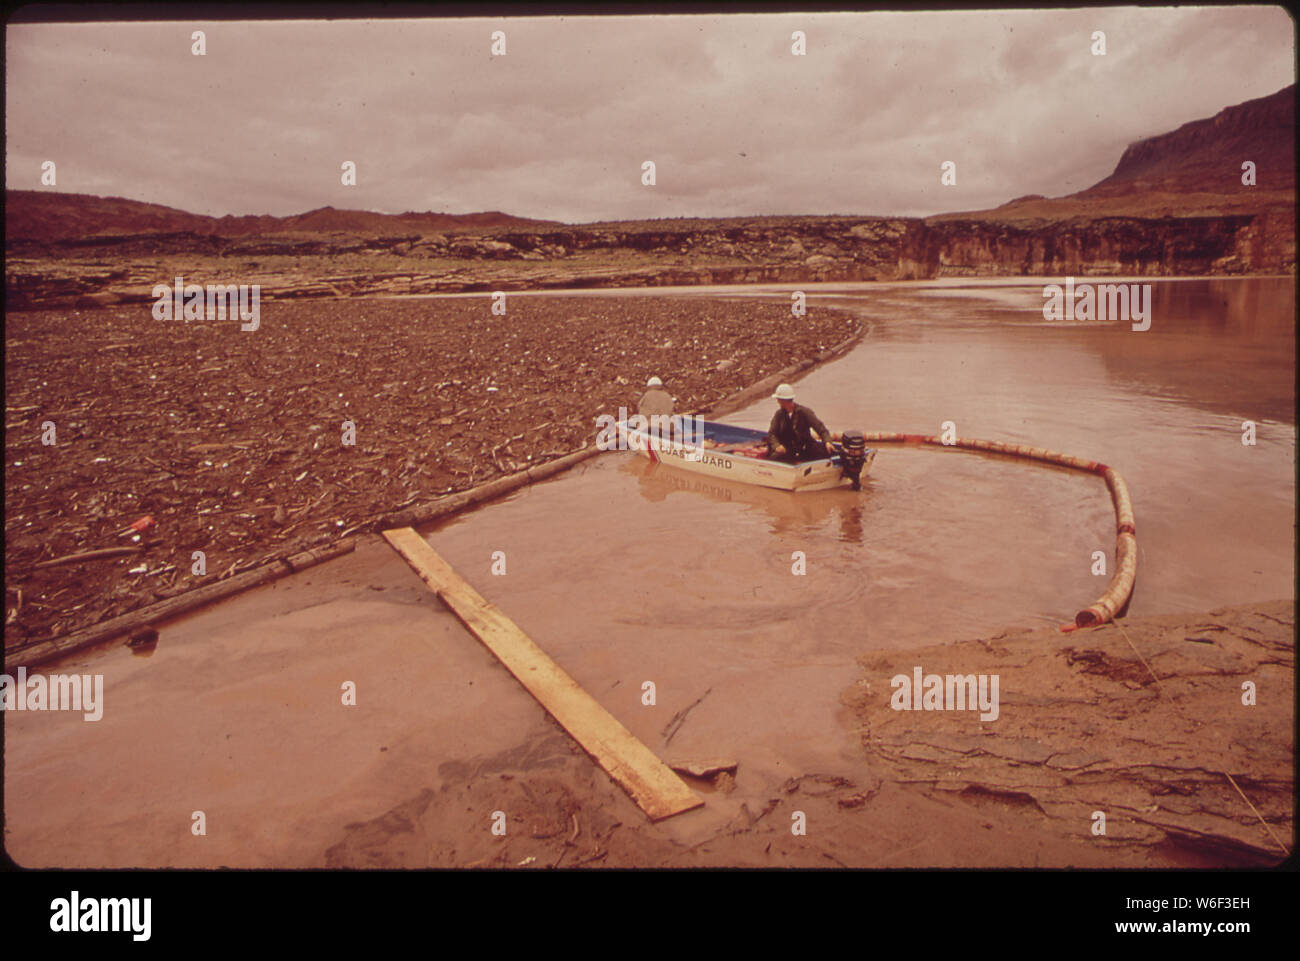 AT SITE OF OIL-SPILL CLEAN-UP OPERATIONS IN A REMOTE AREA OF THE SAN JUAN RIVER. BOAT PUSHES OIL-LADEN DEBRIS TO A POINT WHERE A DRAGLINE SHOVEL CAN REACH IT. SPILL ORIGINATED NEAR SHIPROCK, NEW MEXICO. OIL FLOWED 200 MILES DOWNSTREAM UNTIL TEMPORARILY CONTAINED BY THE LOG BOOM PICTURED HERE. JUST BEYOND BOOM SITE IS THE NORTHEASTERN TIP OF LAKE POWELL Stock Photo